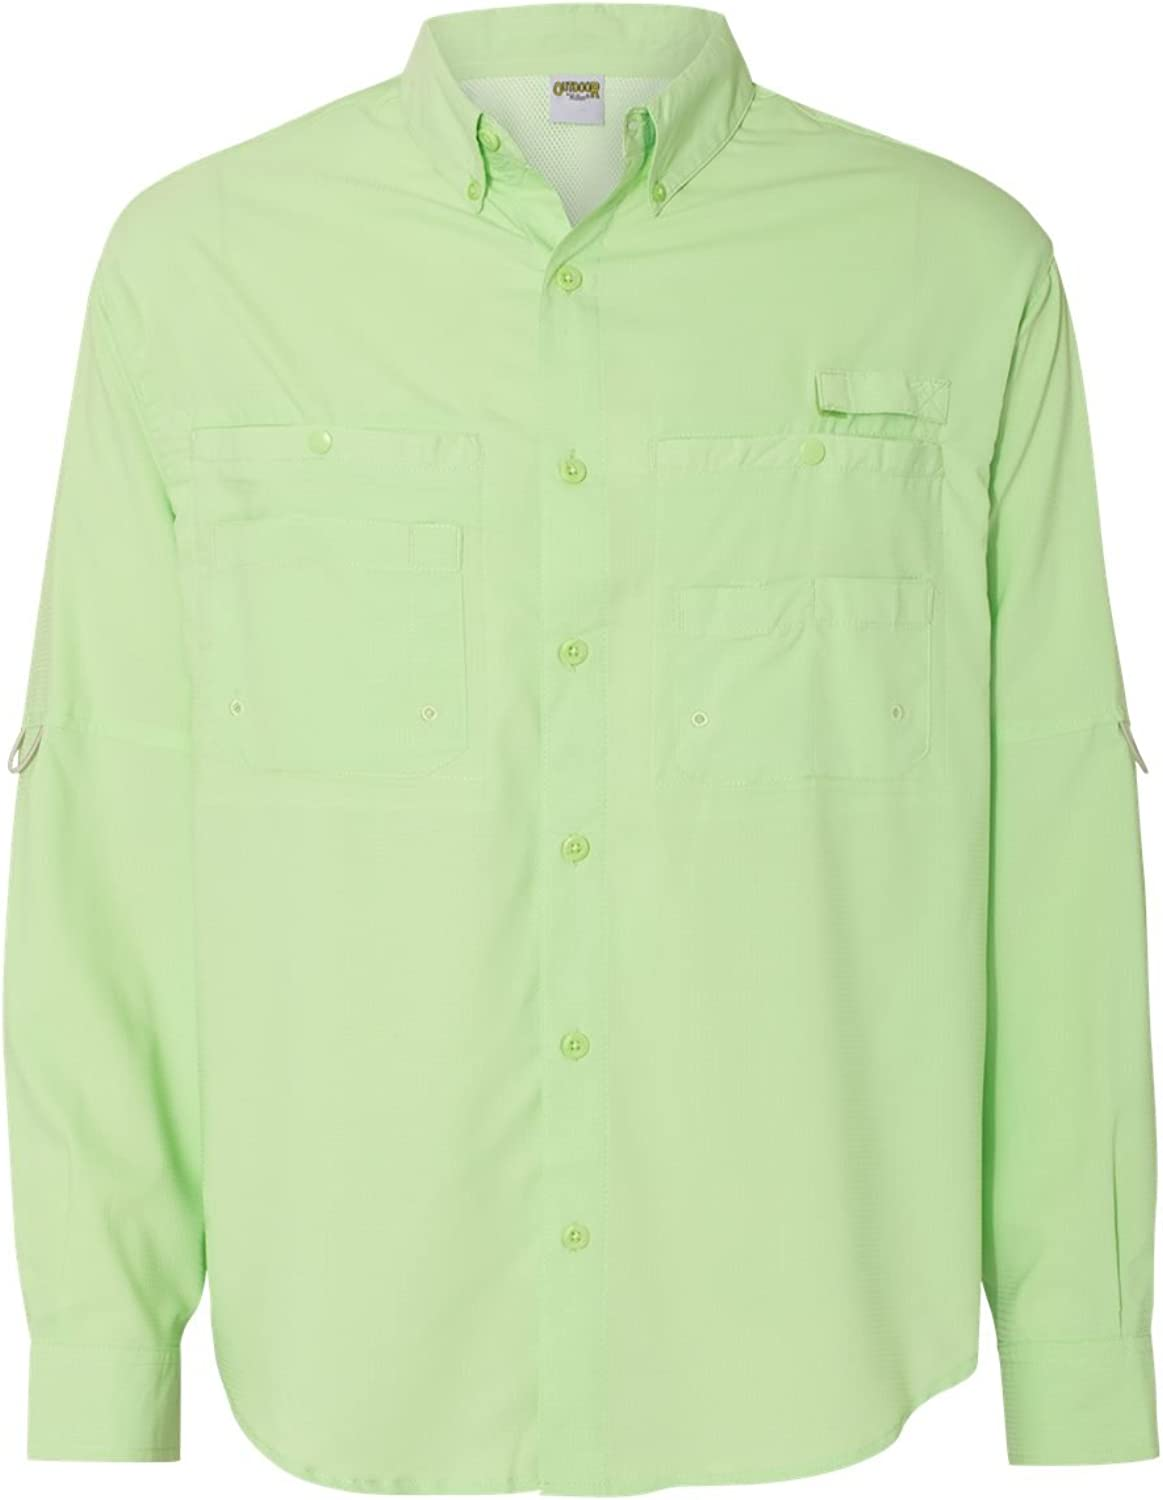 Hilton Baja Long Sleeve Fishing Shirt  ZP2299